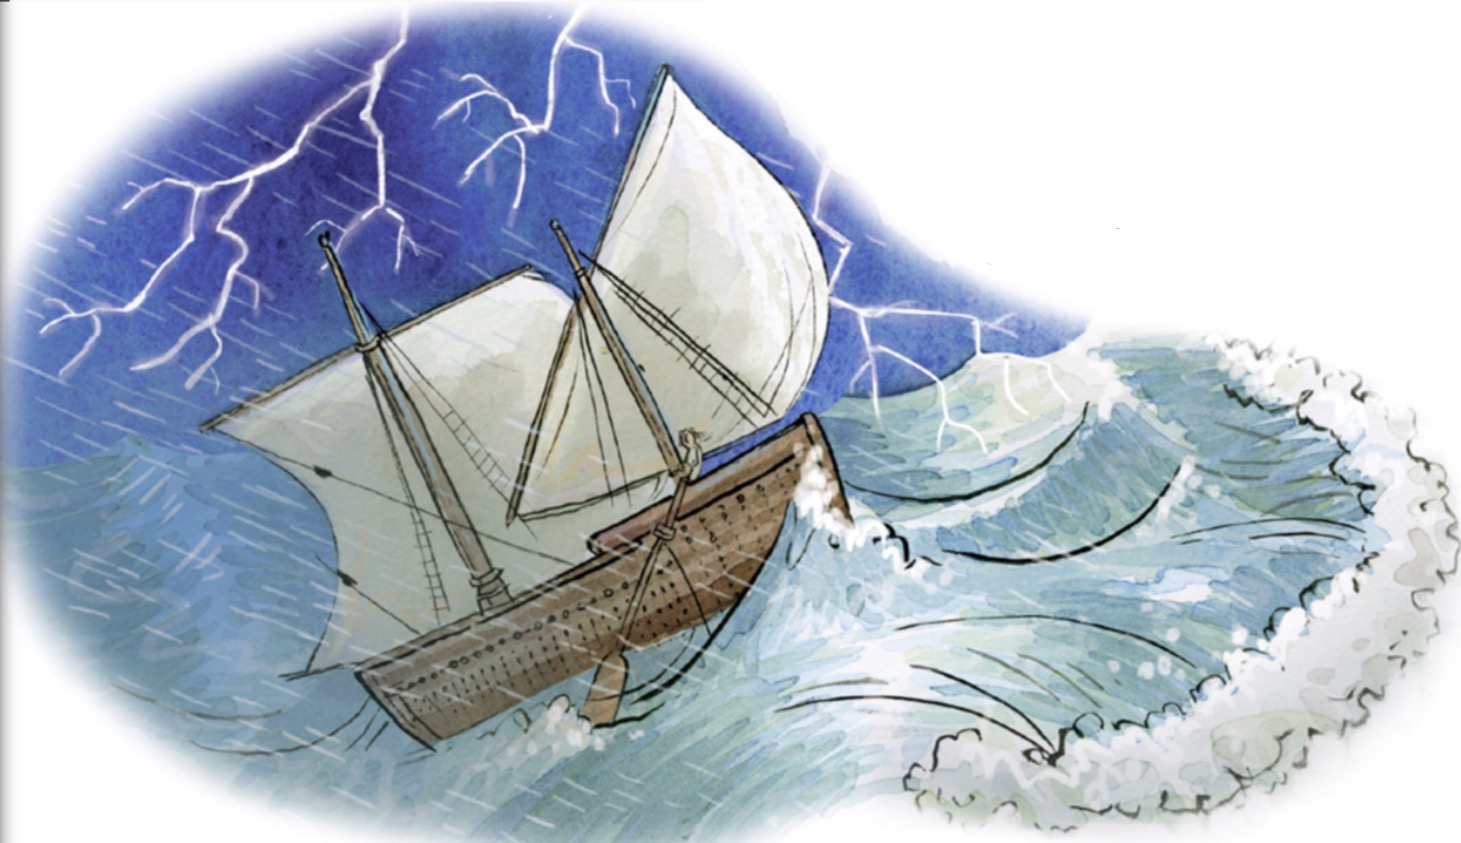 Nephi PNG - lds-nephi nephi-praying lds-nephi-coloring-pages nephi-builds-a- ship lehi-and-nephi nephite-people nephi-boat nephi-ship lds-nephi book-of- nephi the-land-of-nephi lds-nephi-activities lds-nephi-brass-plates lds- nephi-building-the-boat nephi ...